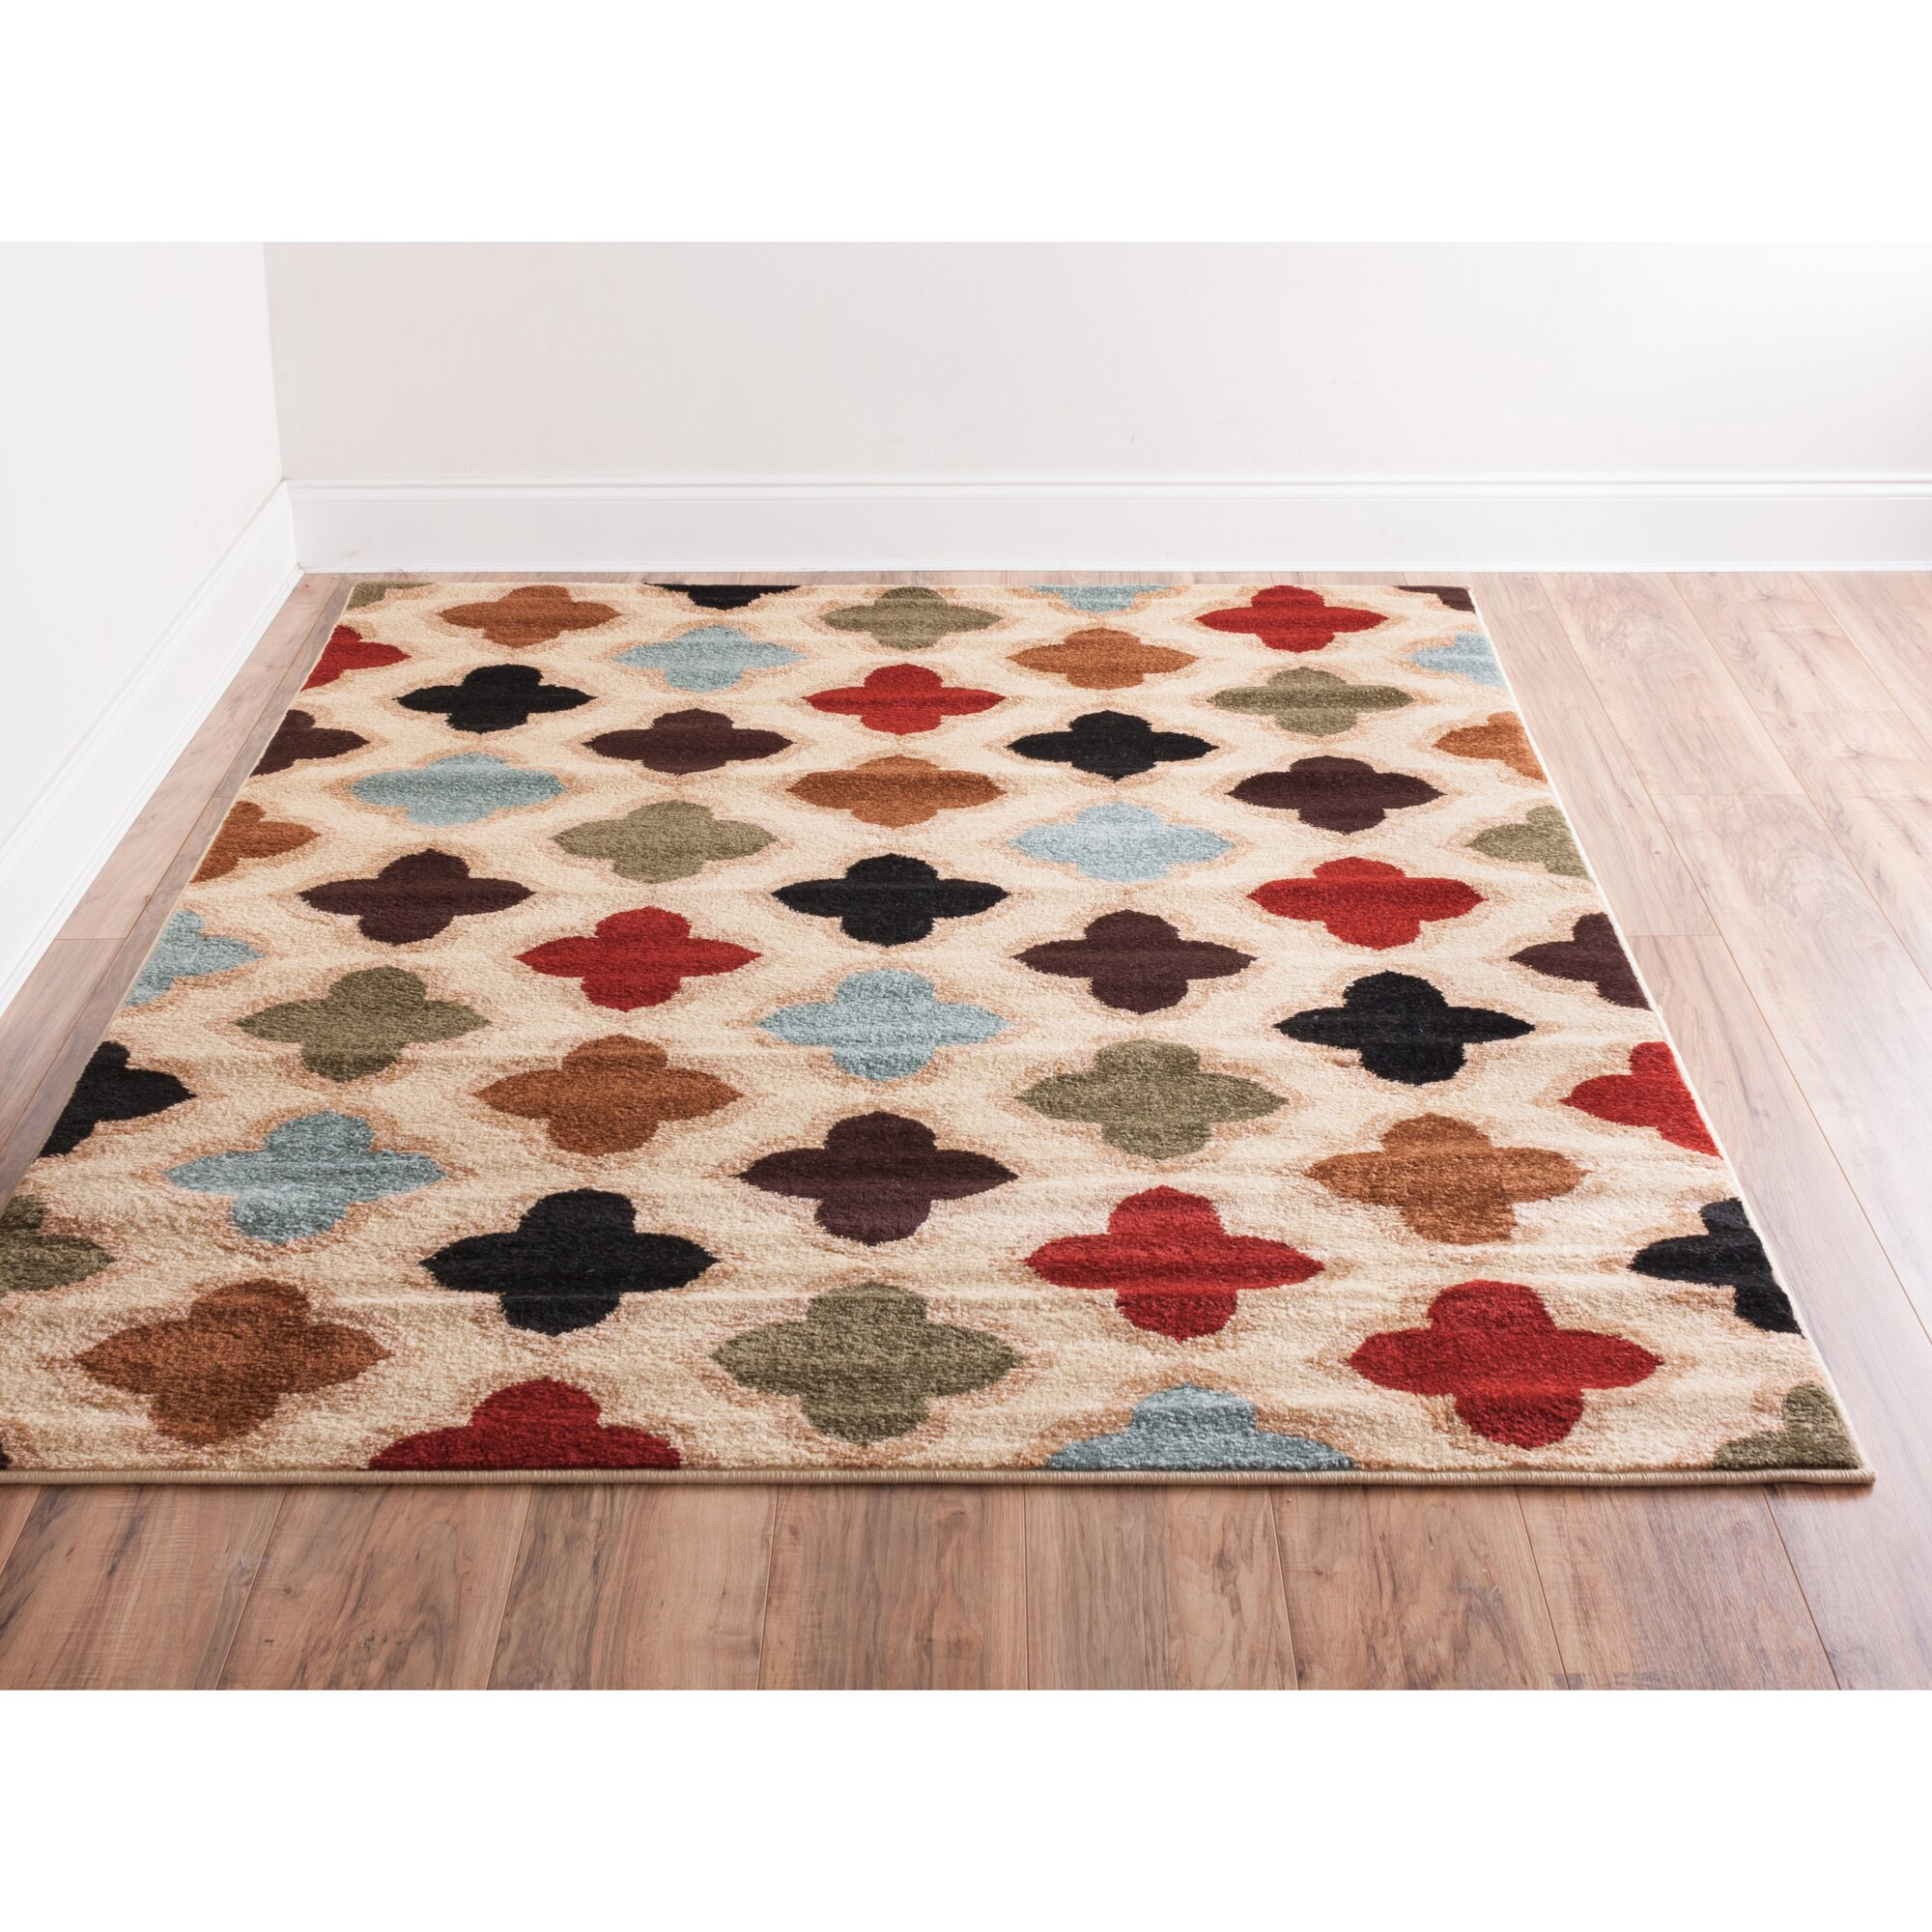 Well Woven Sydney Lizzy's Quatrefoil Area Rug & Reviews